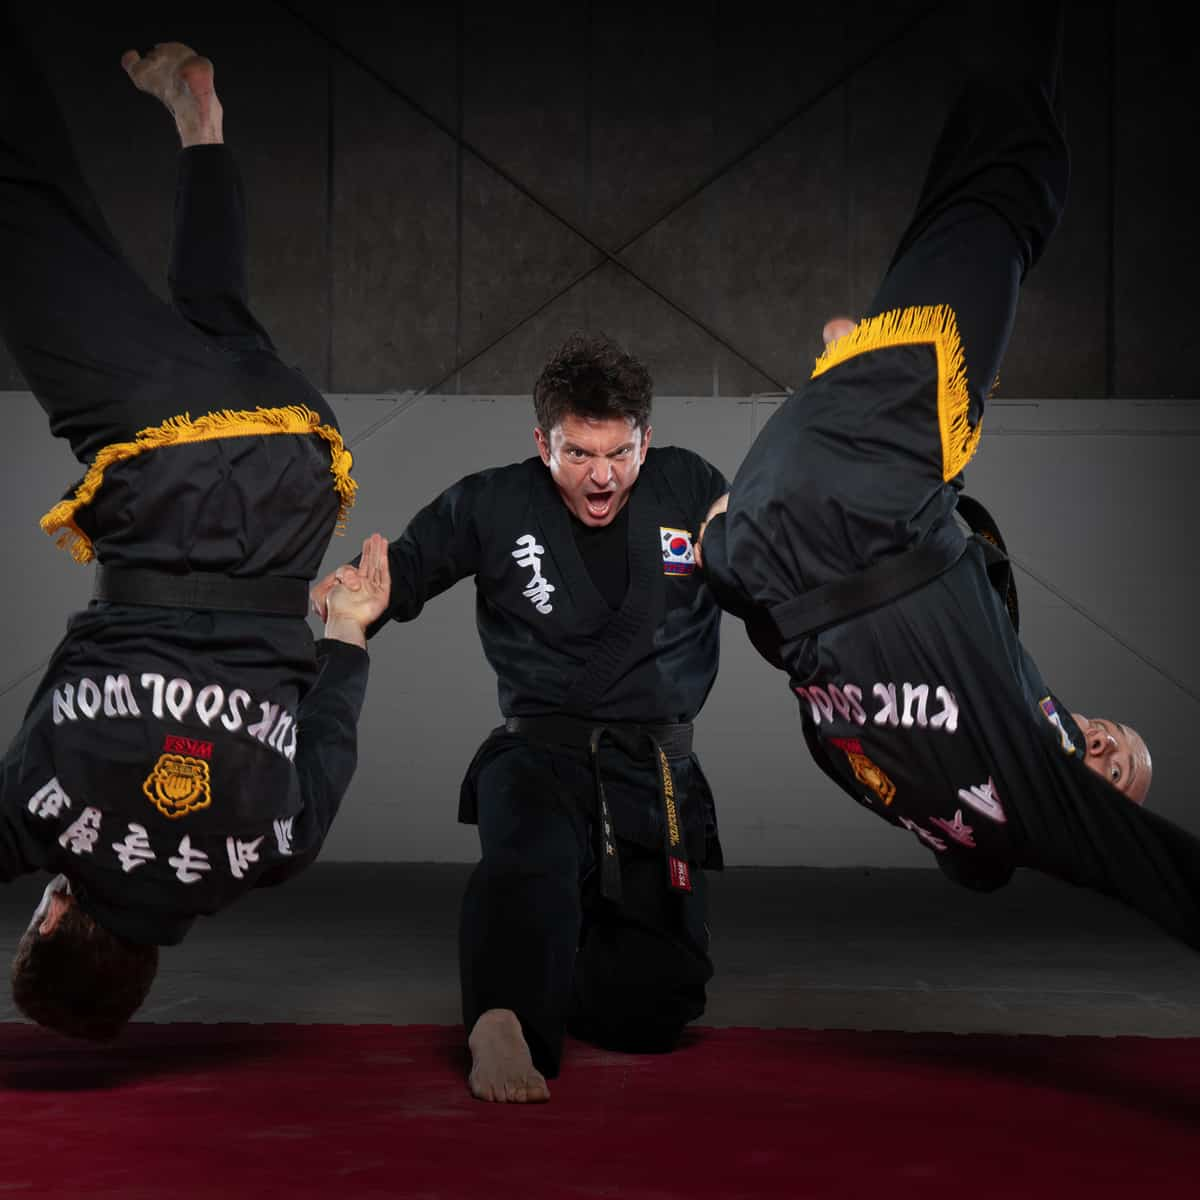 Thomas Evangelopoulos Kuk Sool Won Training in Kirkcaldy